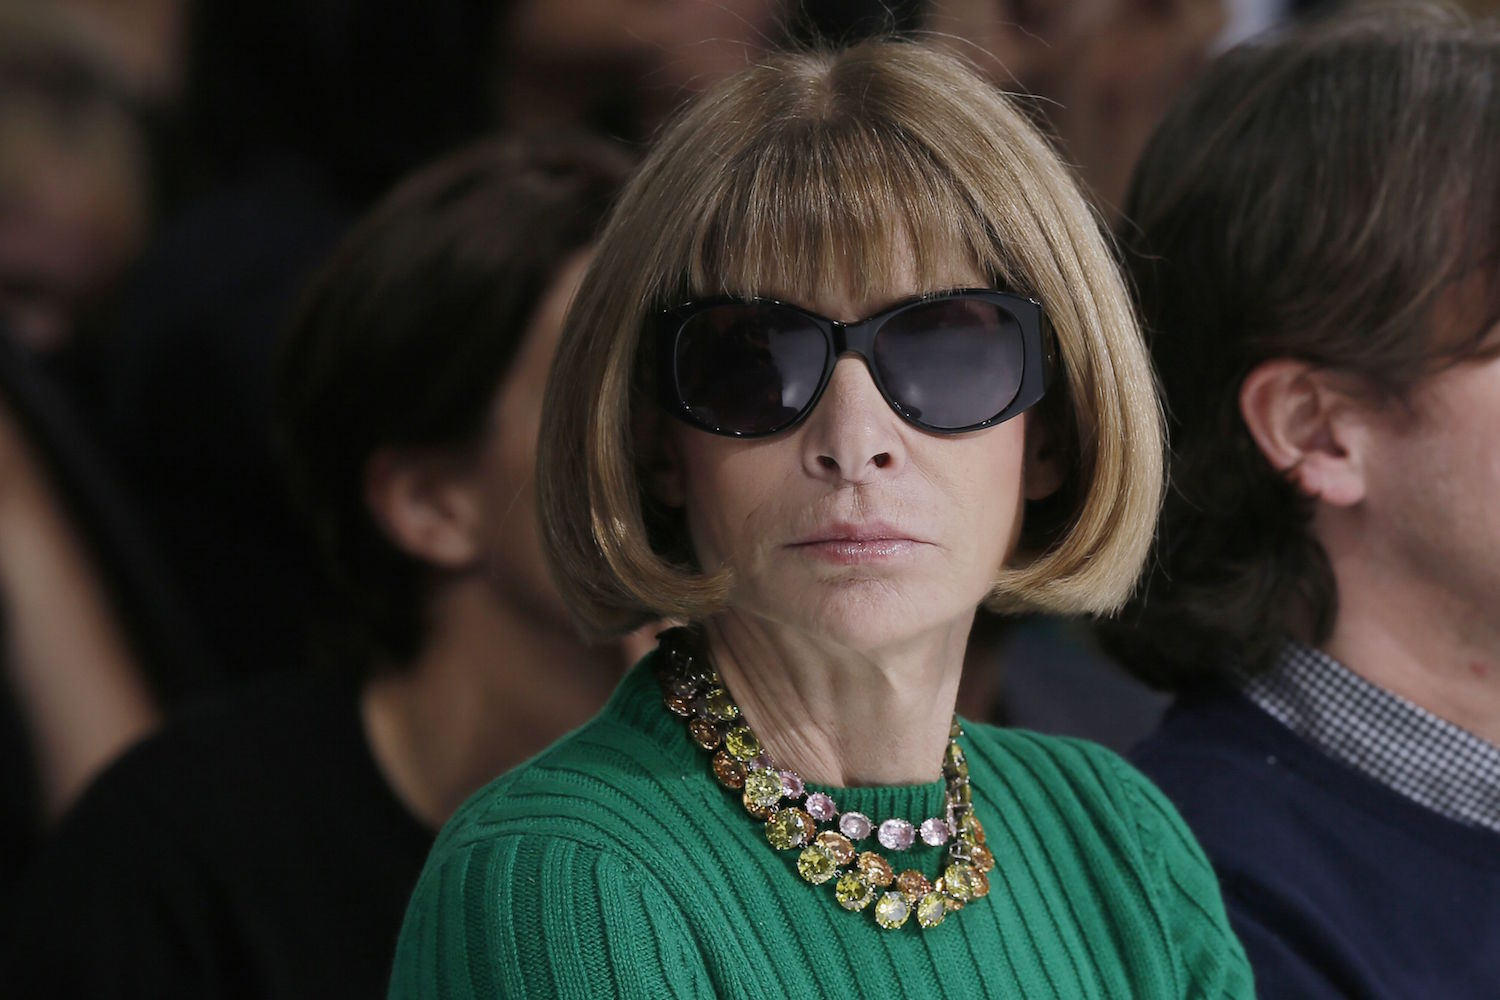 What To Wear To An Interview With Anna Wintour